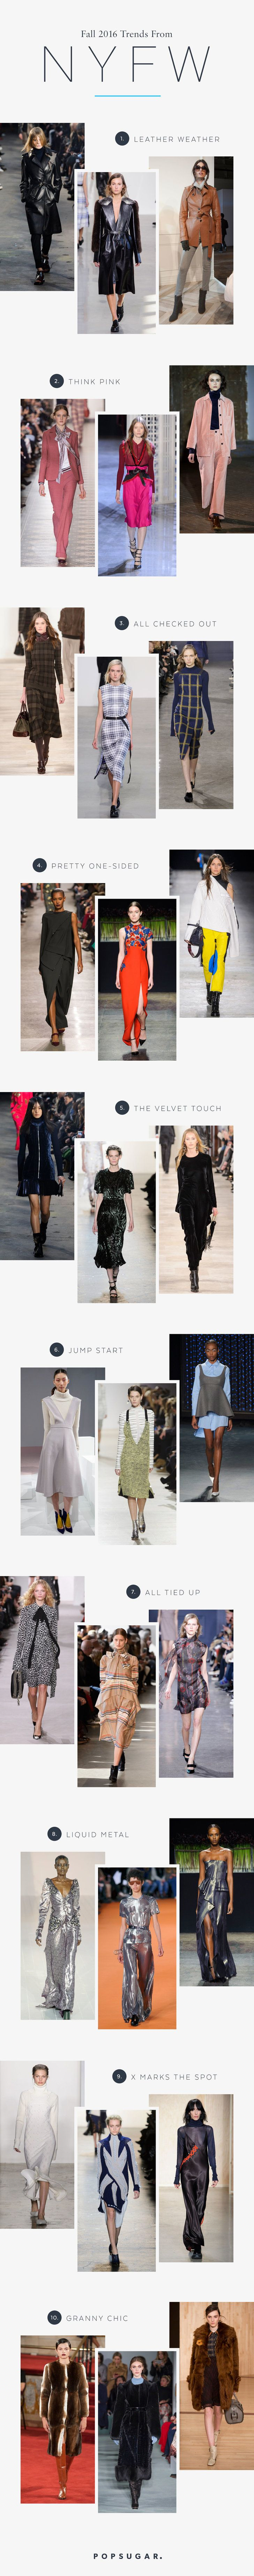 Tassen trend 2016 : Images about fashion trend on